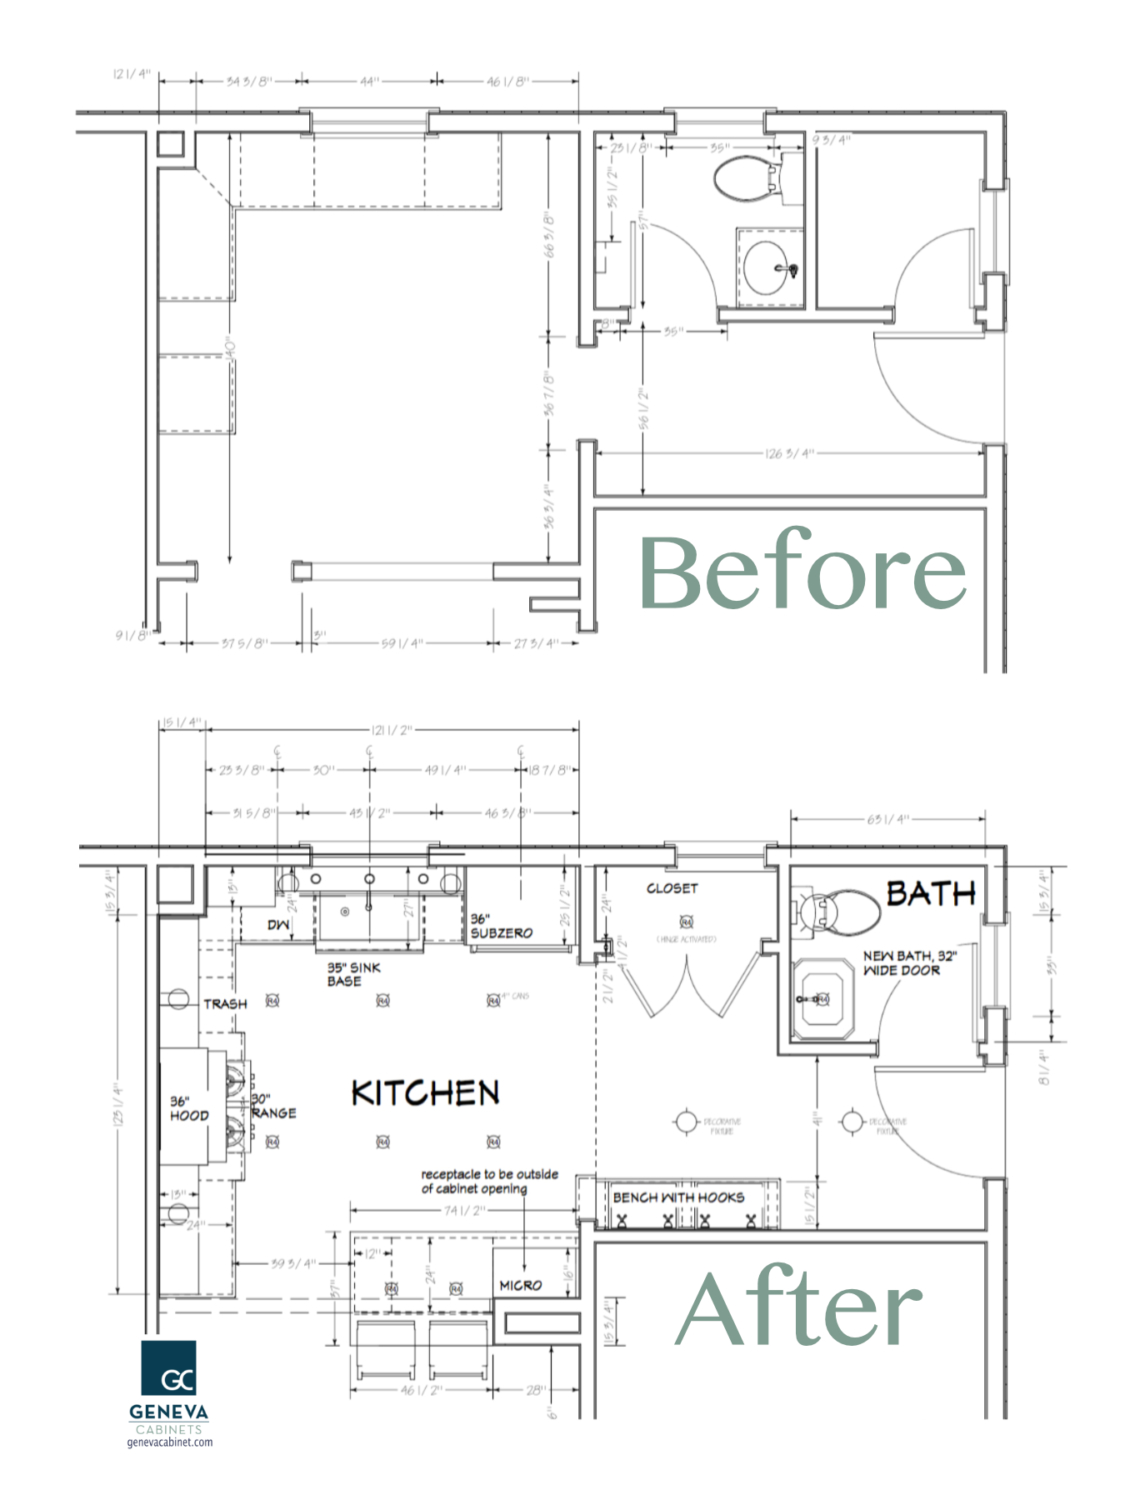 Kitchen Remodel Floor Plan Before And